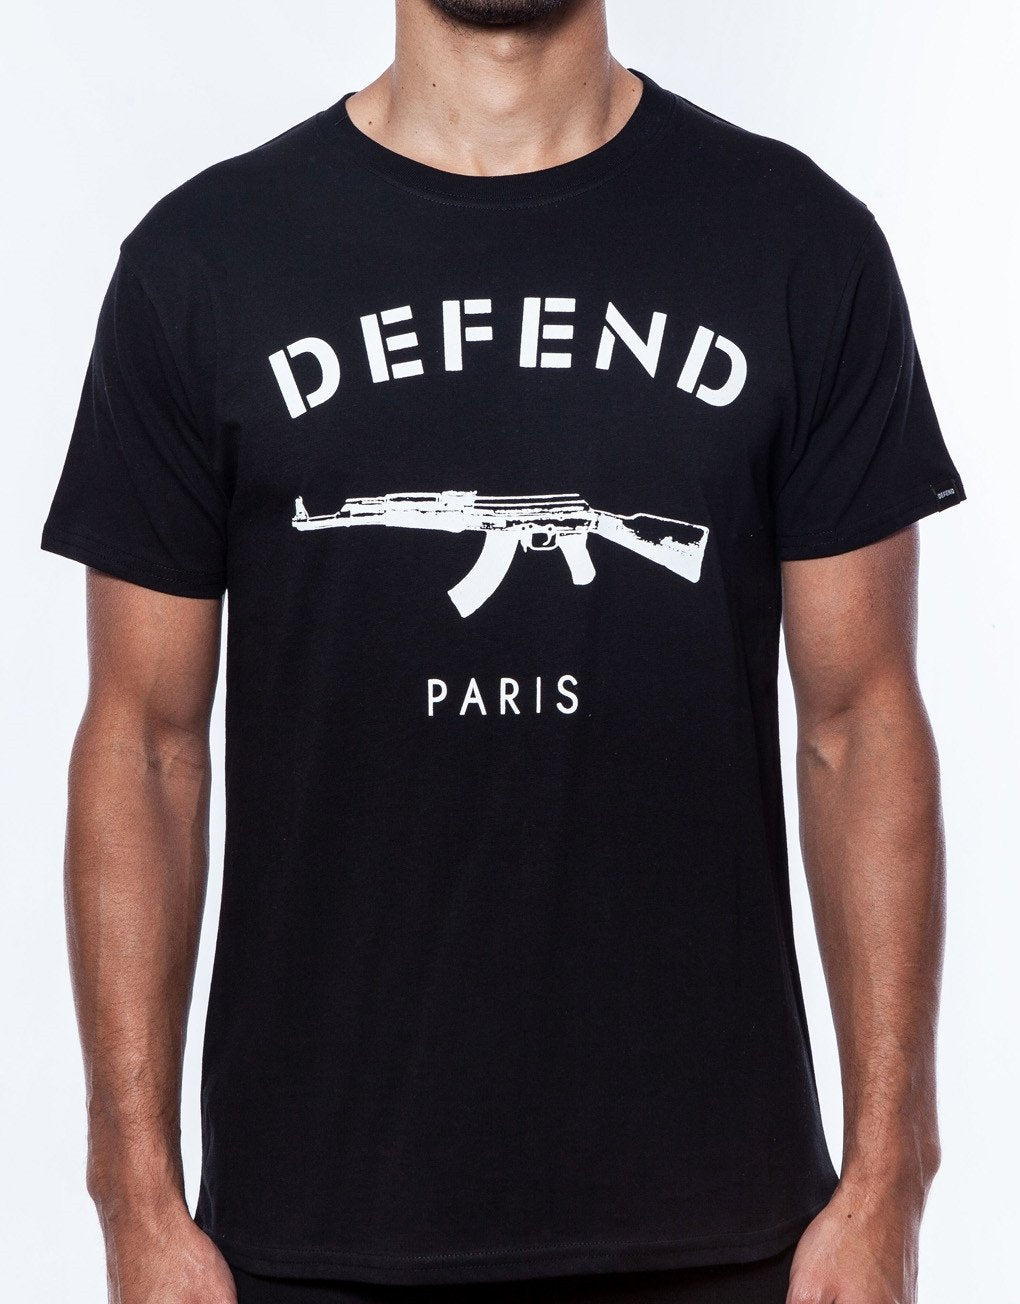 Defend Paris Paris T-Shirt hos Stillo